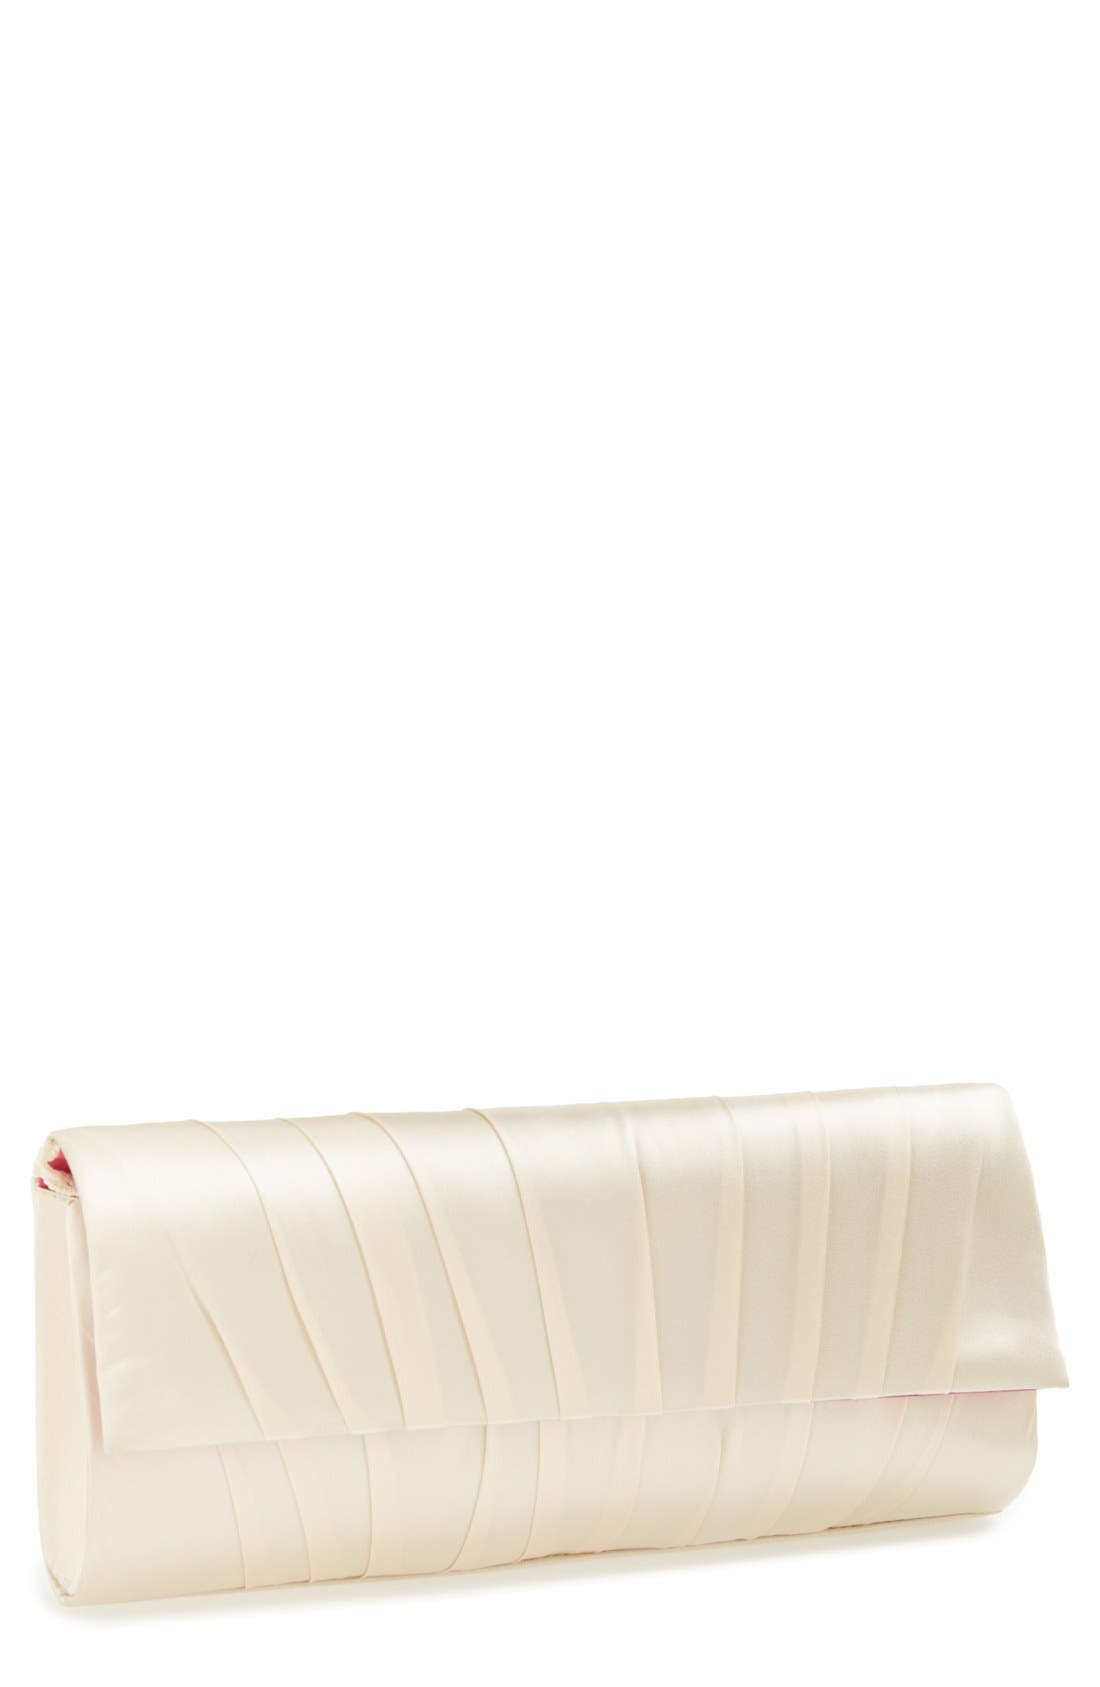 'Livana' Clutch,                             Main thumbnail 1, color,                             Champagne